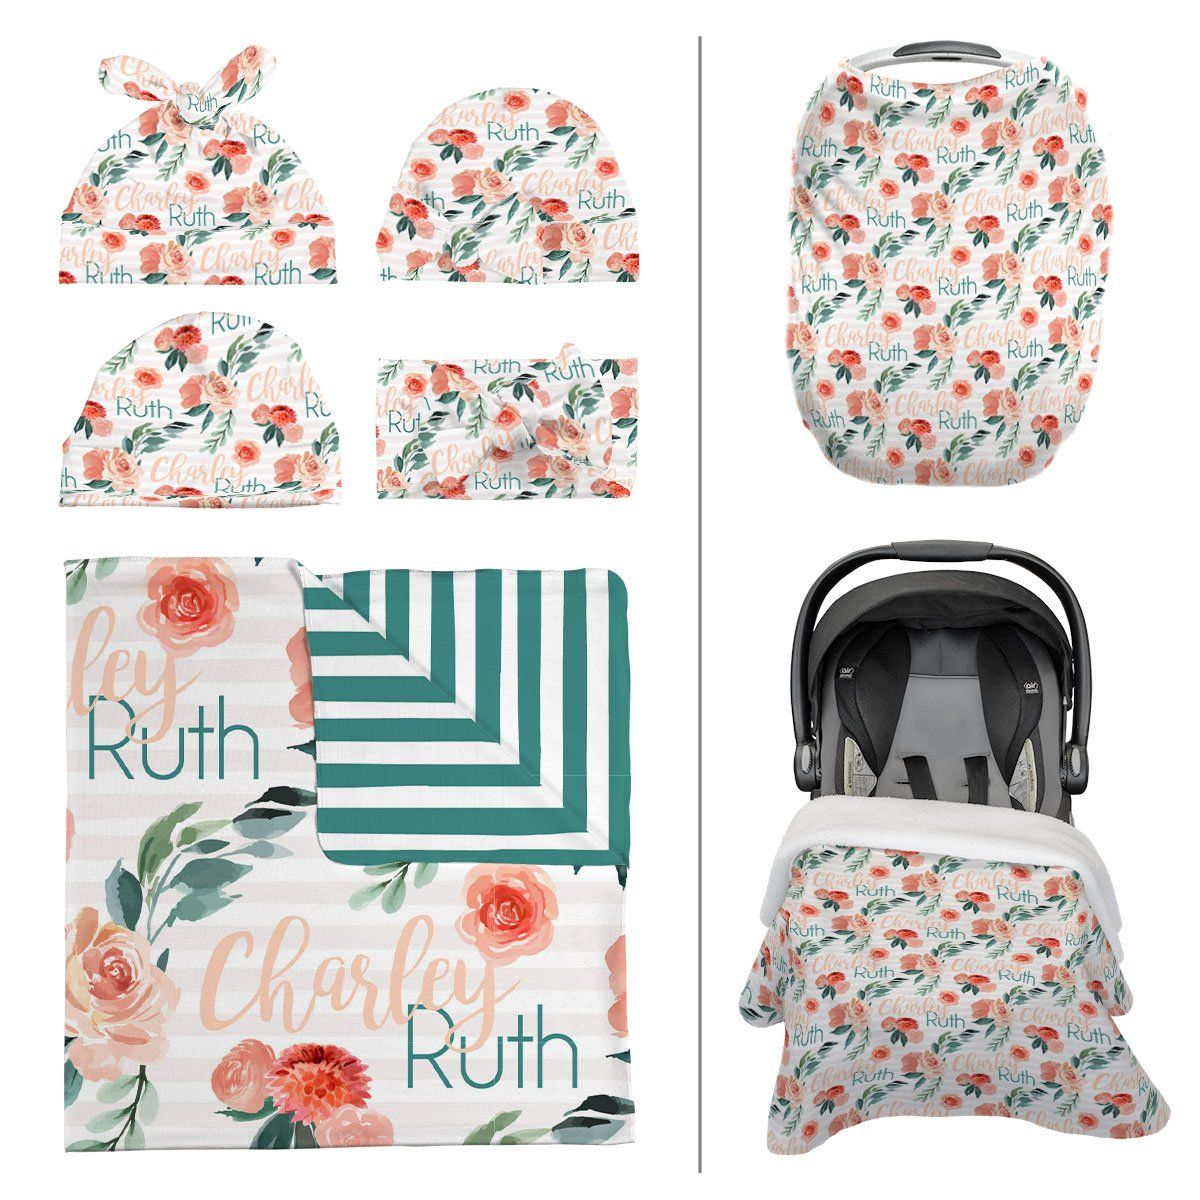 Charley Ruth | Take Me Home Bundle